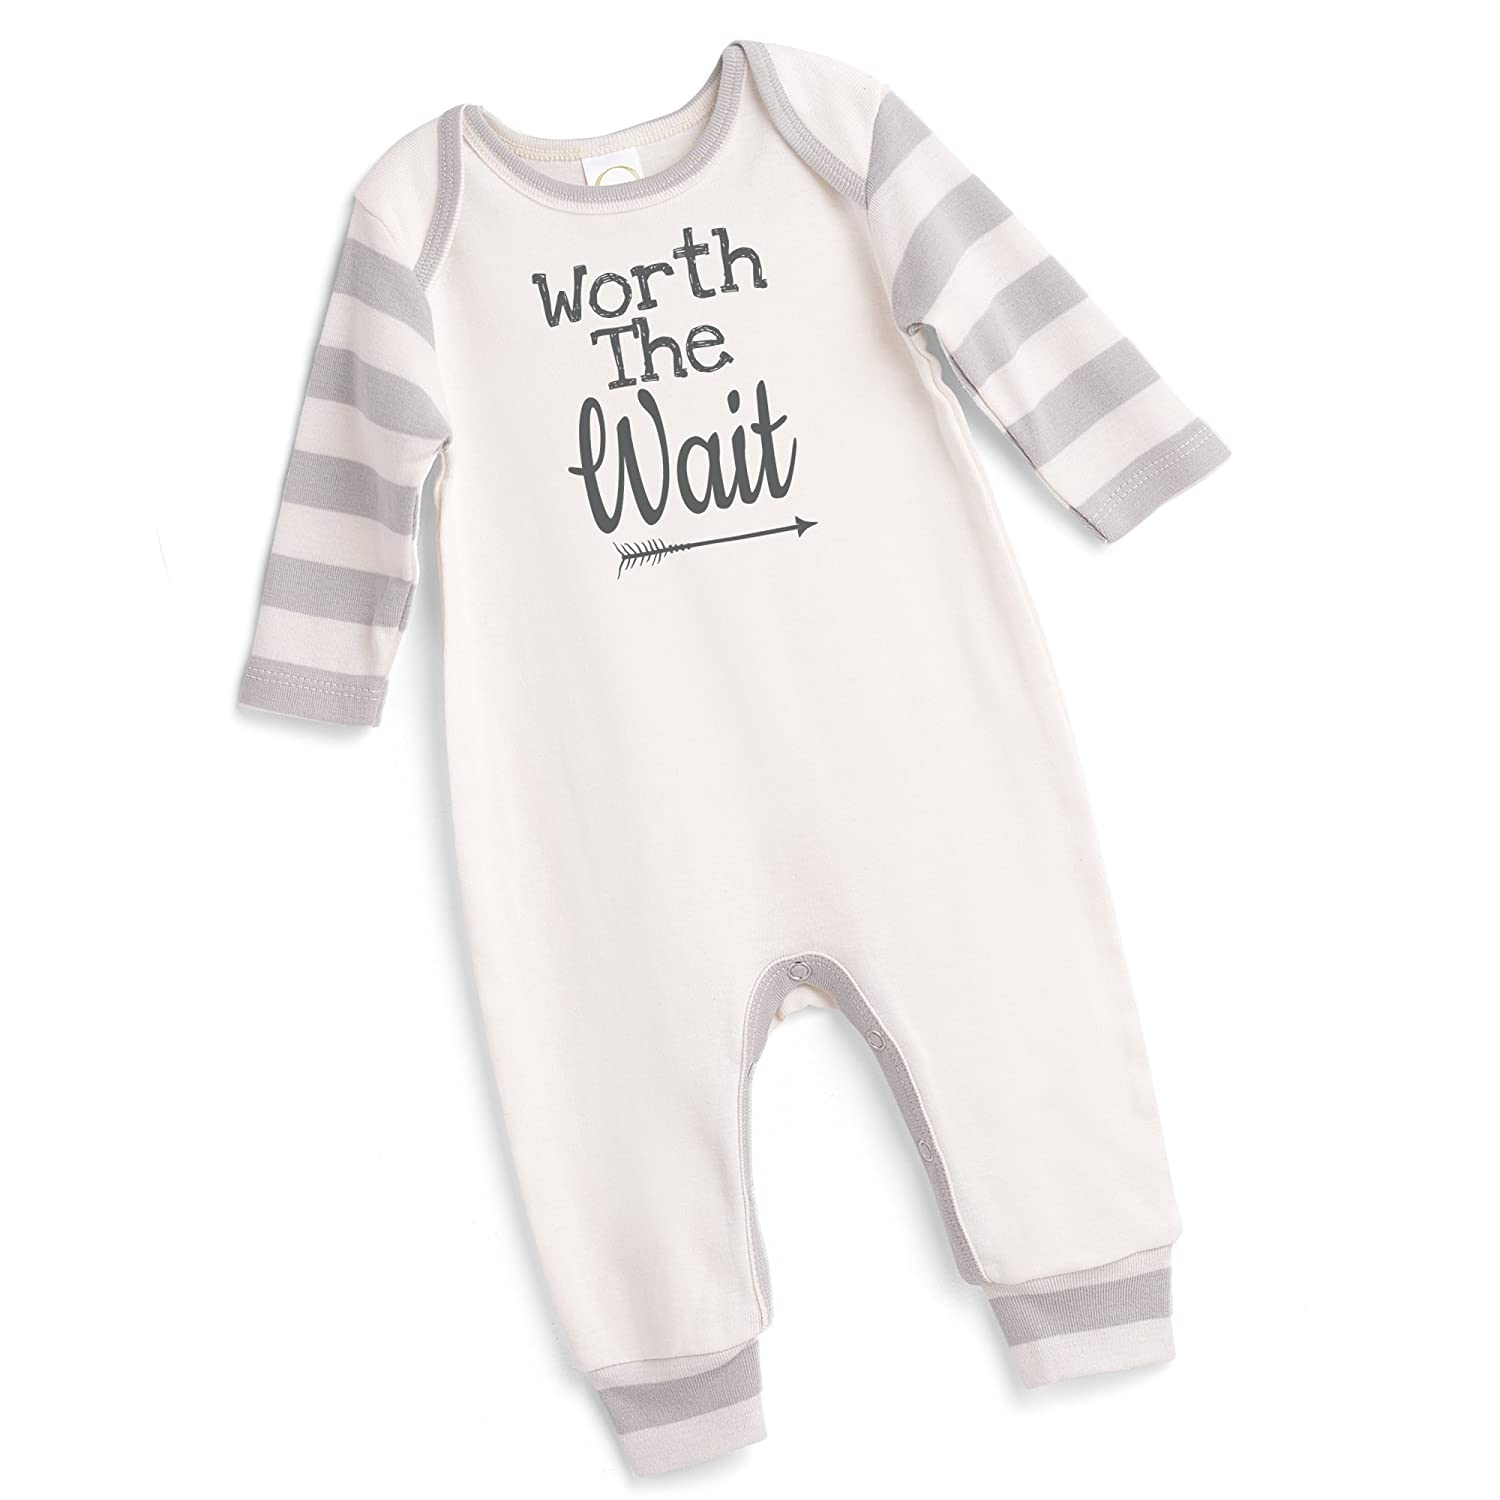 5c7899c13d06 Amazon.com  Tesa Babe Worth The Wait Arrow Romper